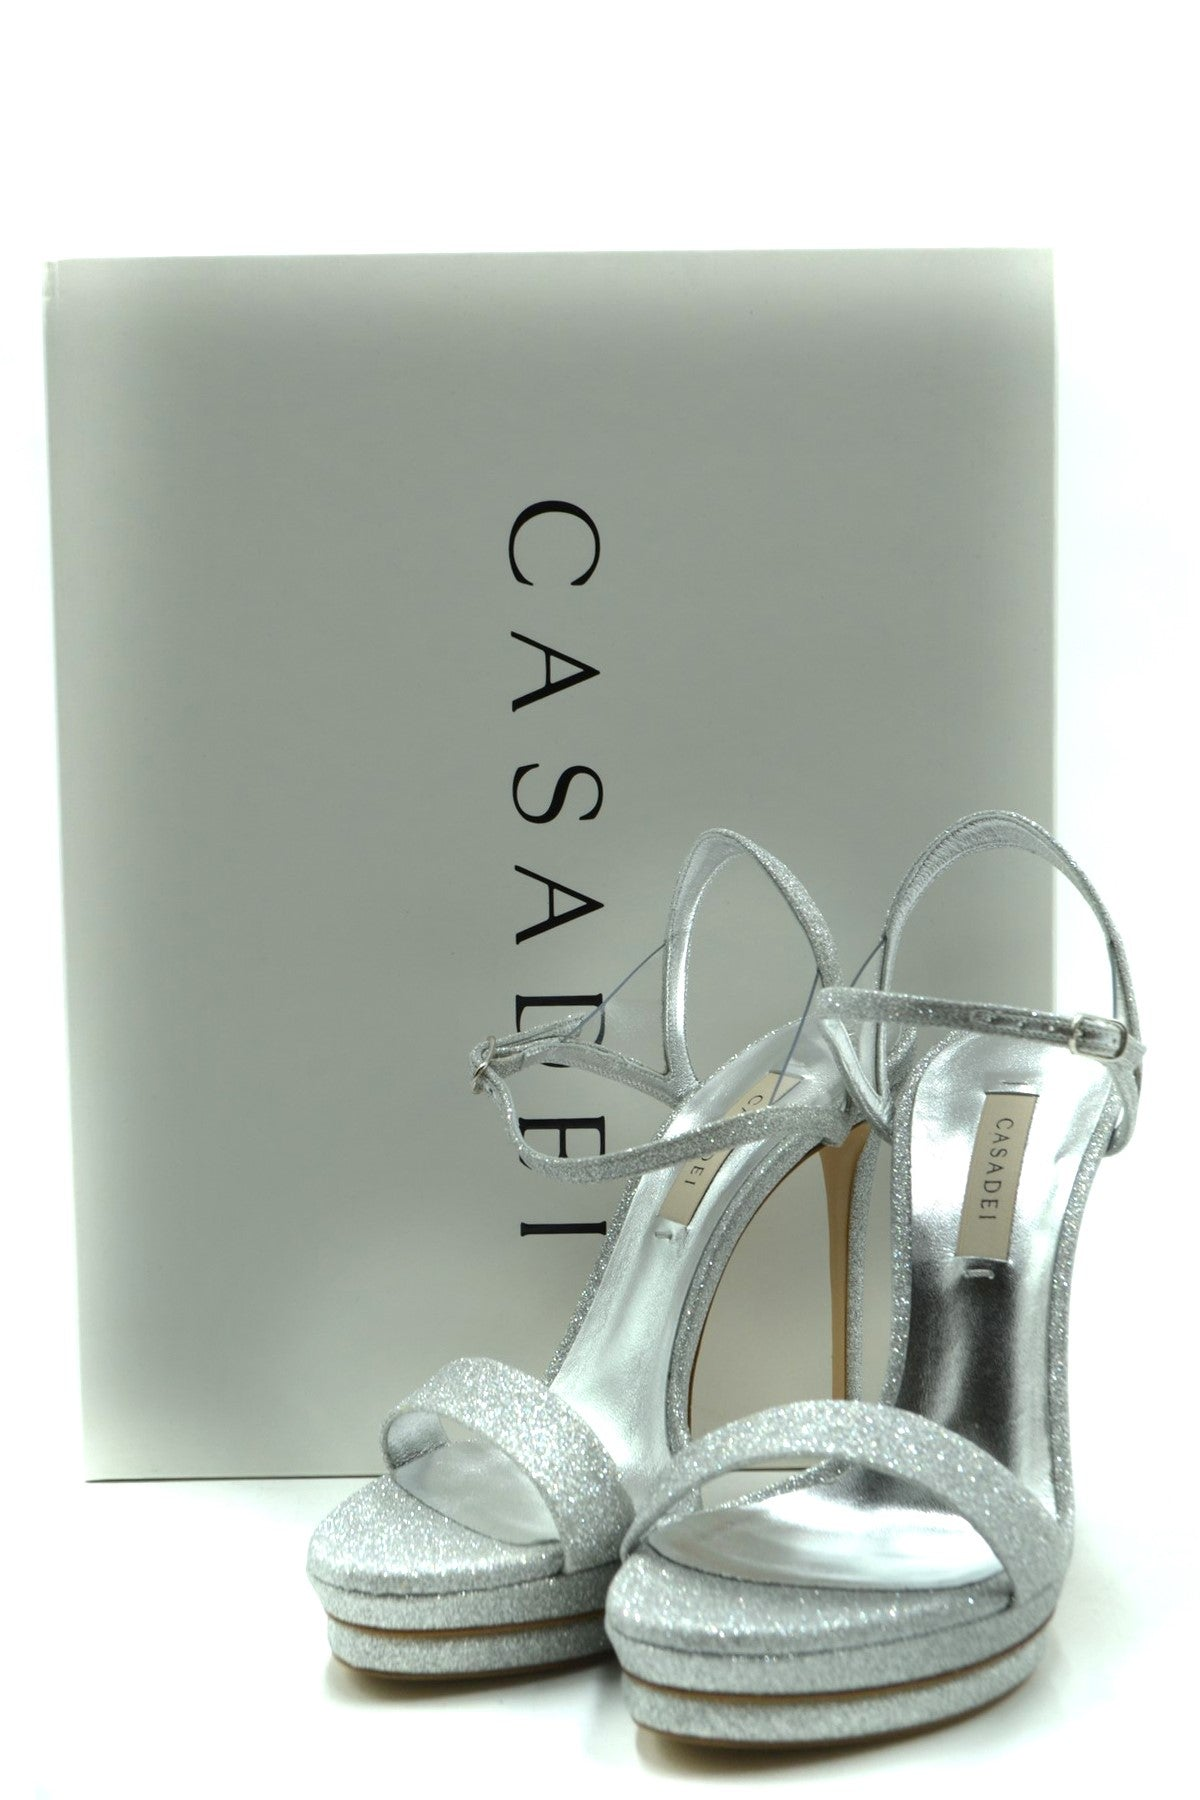 Shoes Casadei-Women's Fashion - Women's Shoes - Women's Sandals-Product Details Terms: New With LabelMain Color: SilverType Of Accessory: ShoesSeason: Spring / SummerMade In: ItalyGender: WomanHeel'S Height: 12 CmSize: EuComposition: Leather 100%Year: 2020Manufacturer Part Number: 1L554P1201T00849700-Keyomi-Sook